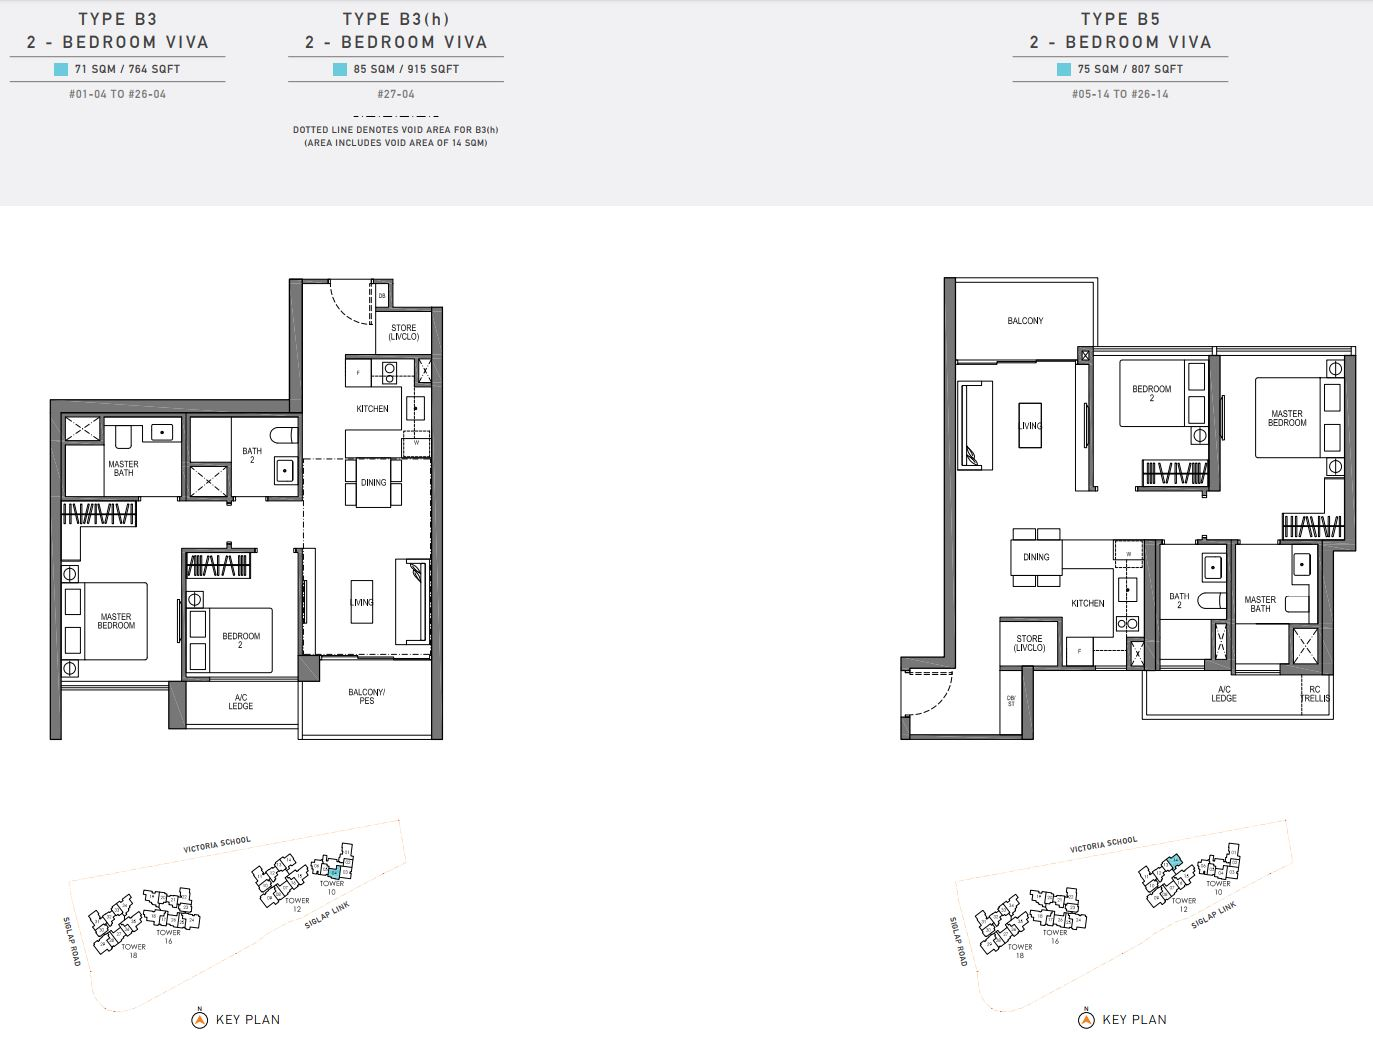 Seaside Residences FloorPlan - 2 Bedroom Viva_2